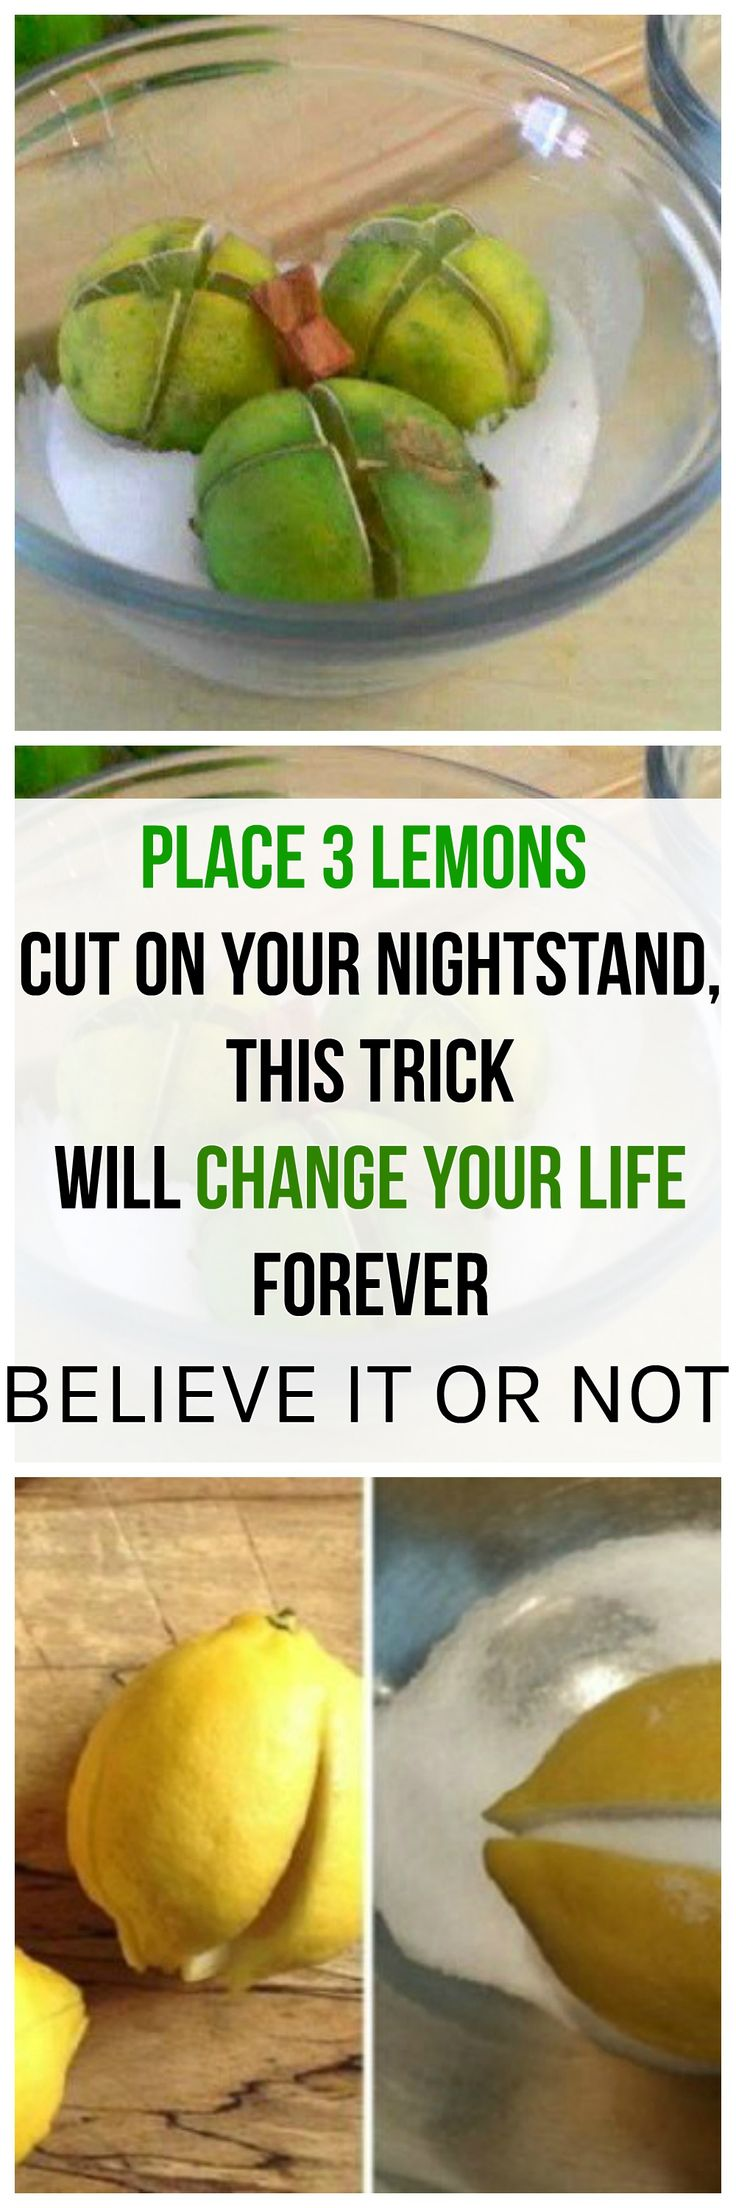 PLACE THREE LEMONS CUT ON YOUR NIGHTSTAND, THIS TRICK WILL CHANGE YOUR LIFE FOREVER, BELIEVE IT OR NOT!!